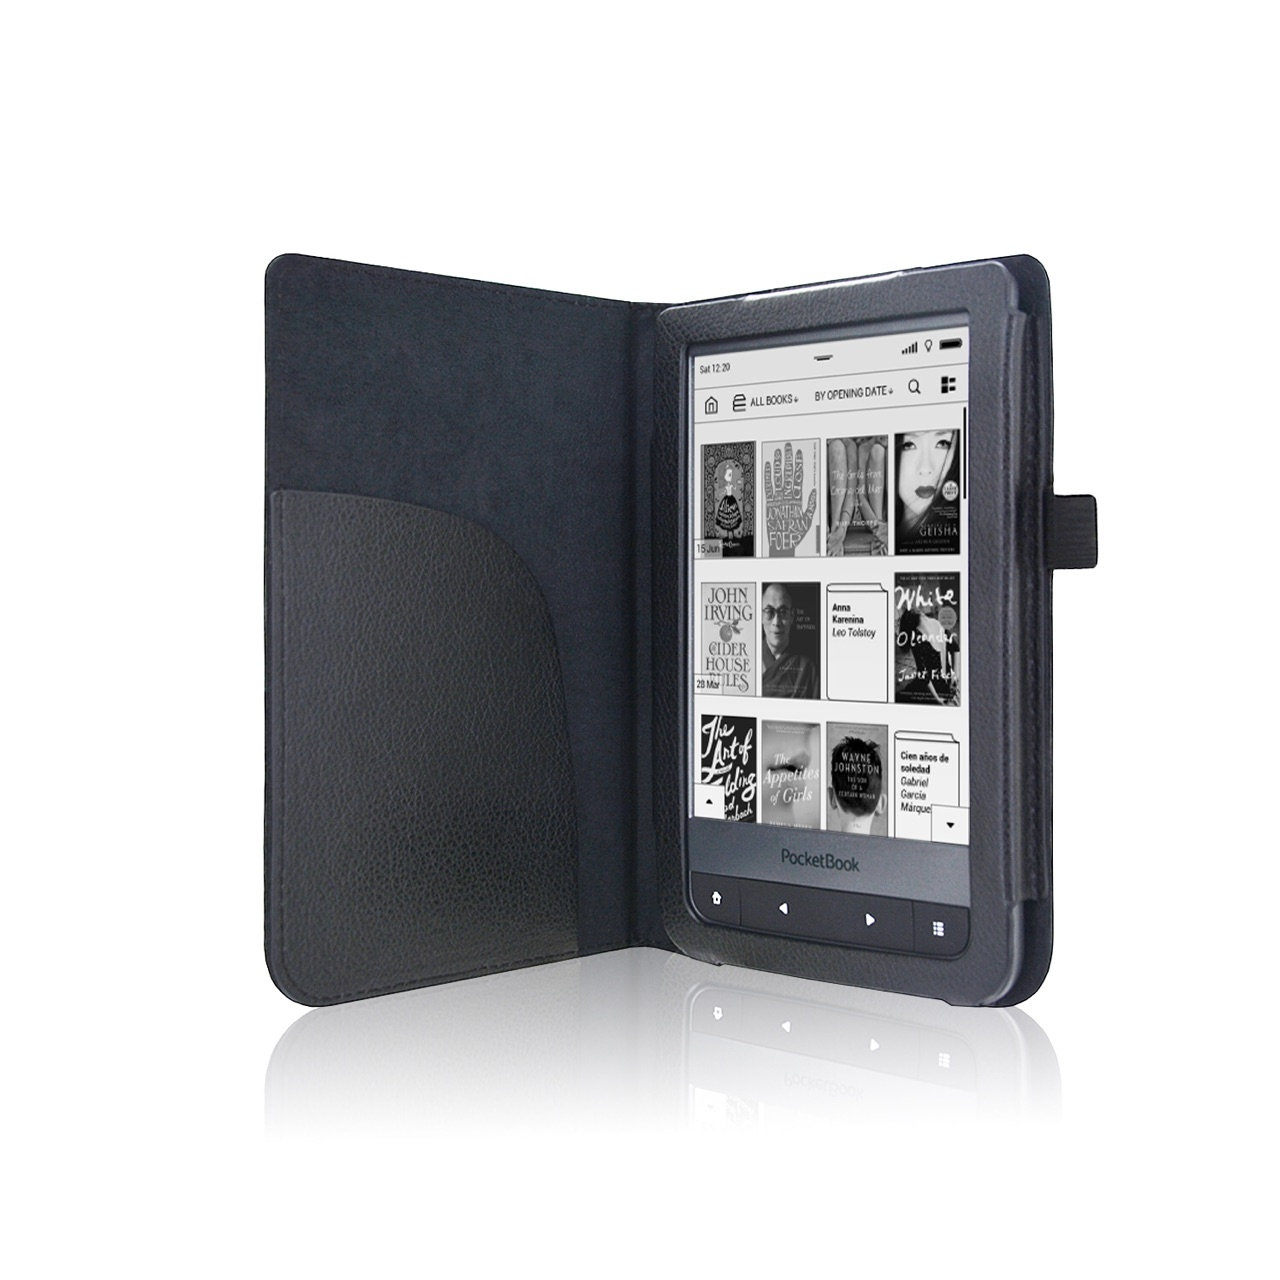 Luxe Zwarte Leren Hoes Pocketbook Touch Hd Cover Case